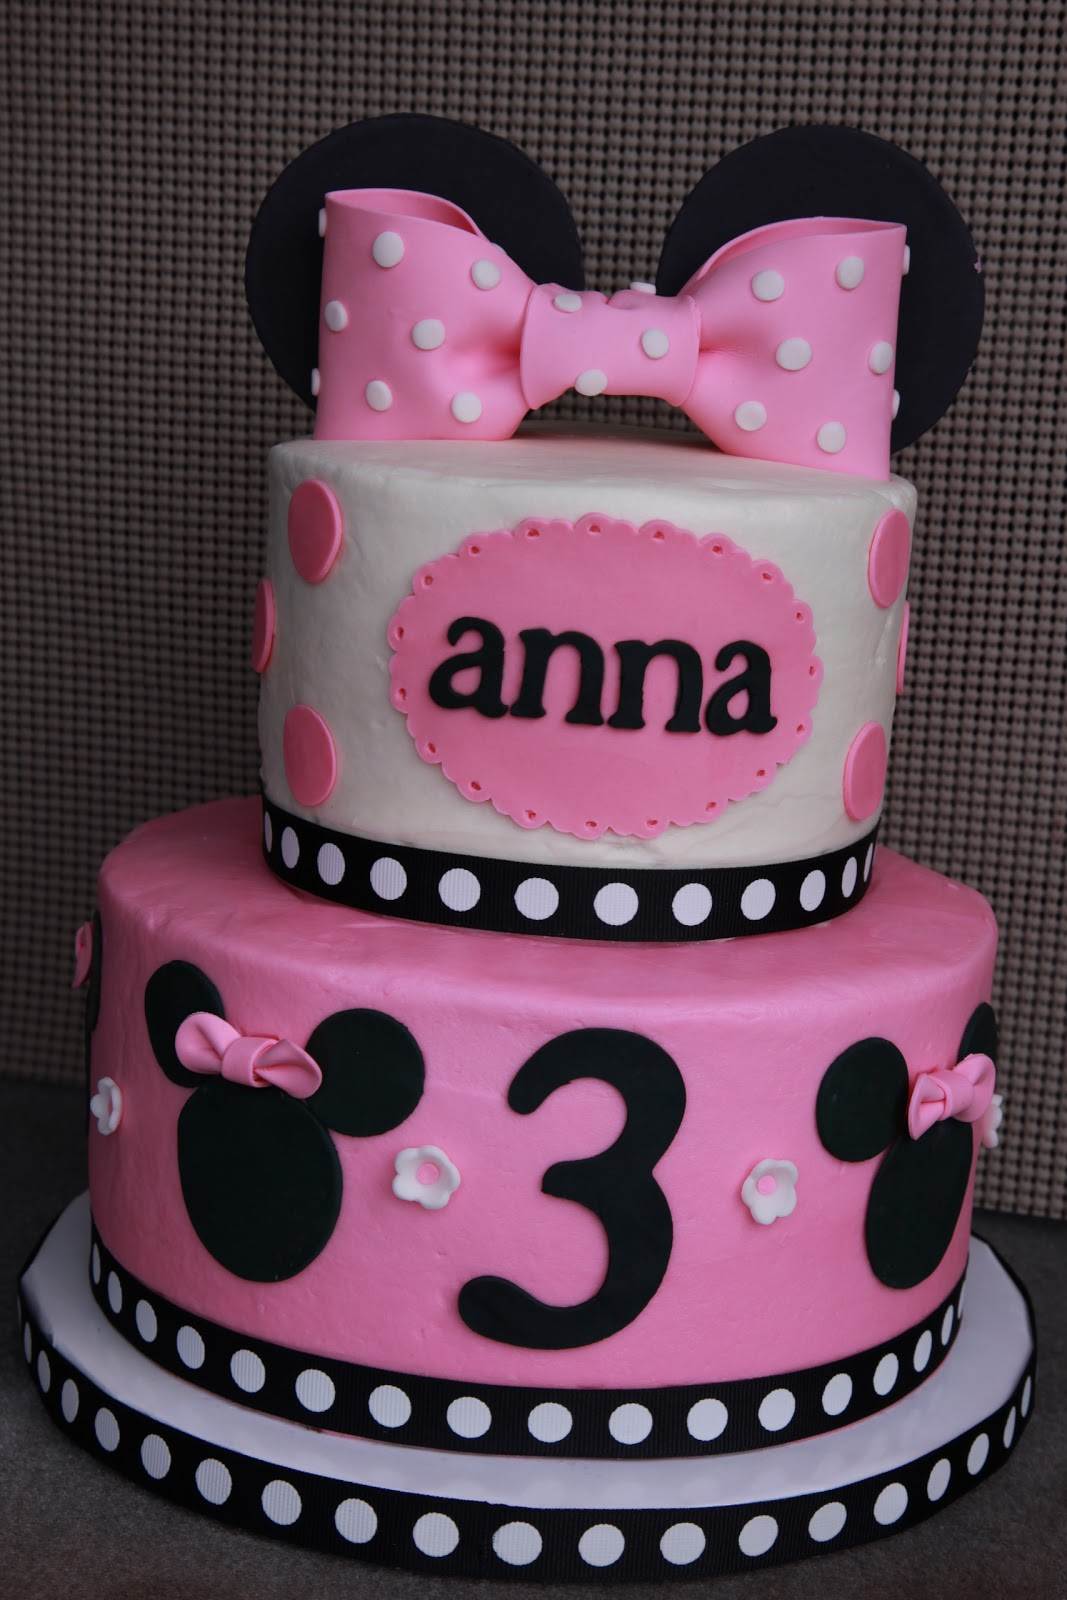 Minnie Mouse Birthday Cake For A 3 Year Old Girl Top Tier Vanilla Bottom Chocolate With Buttercream Fondant Gum Paste Decorations